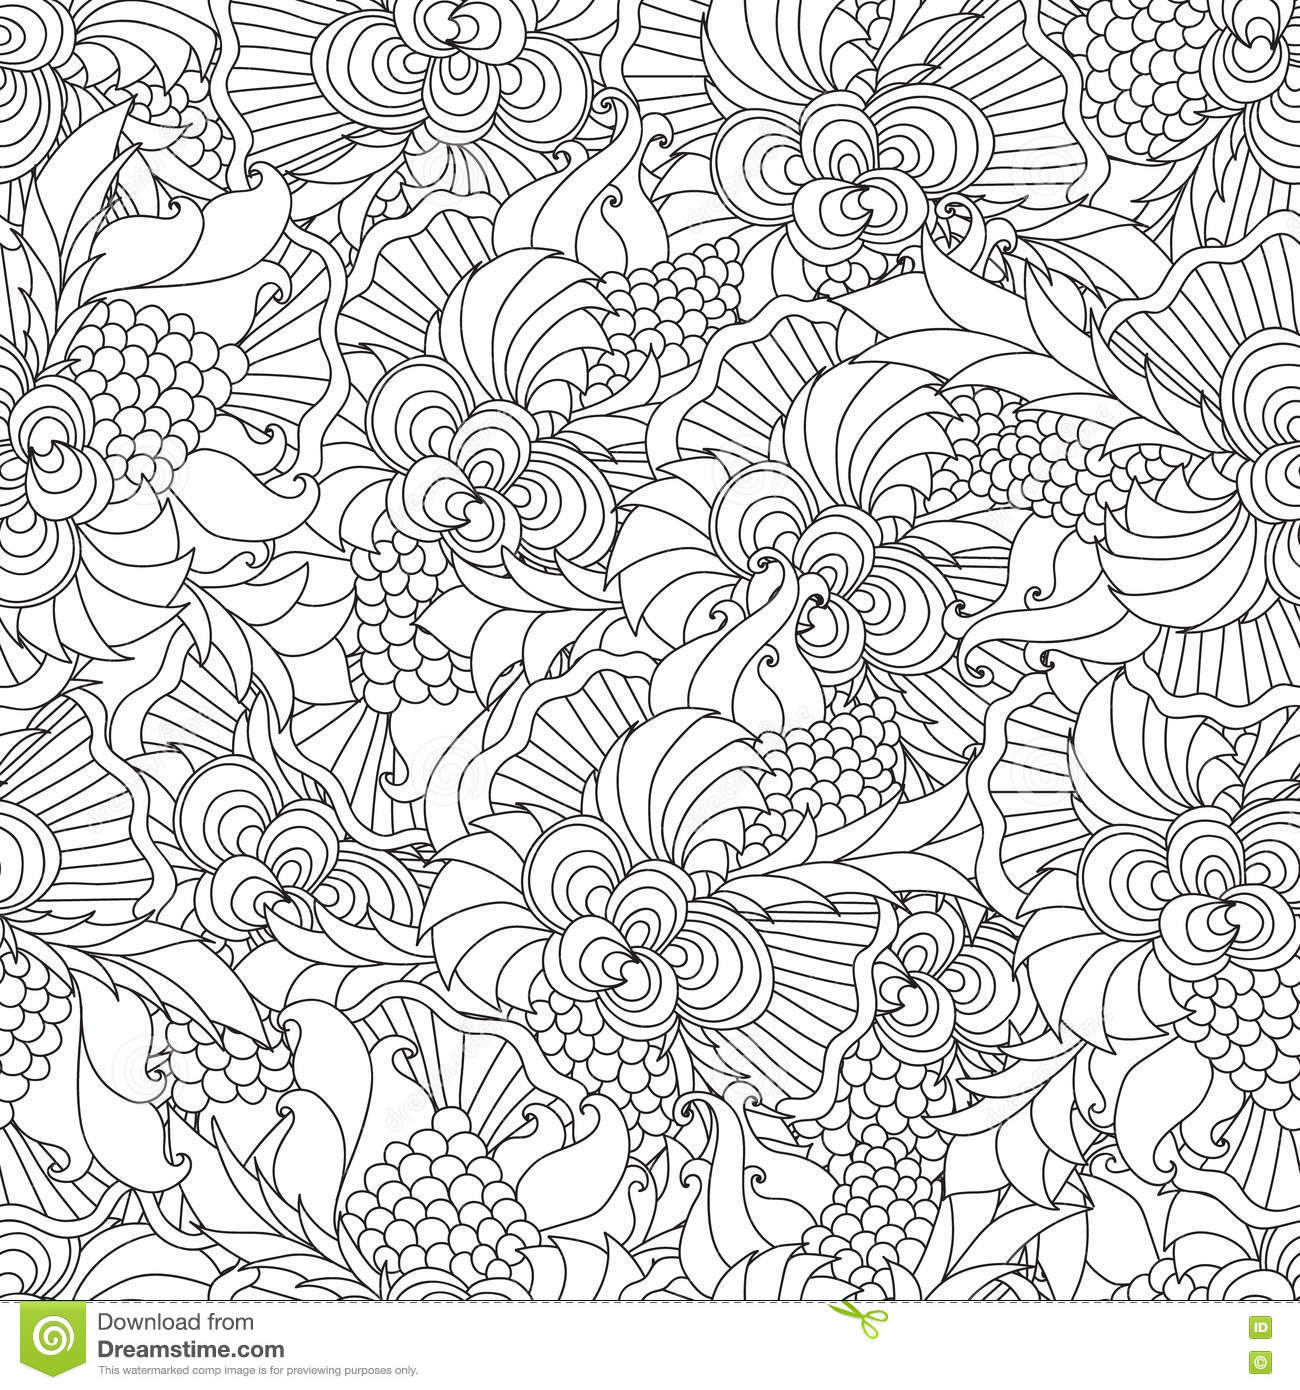 Coloring pages for adults. stock vector. Illustration of indian ...